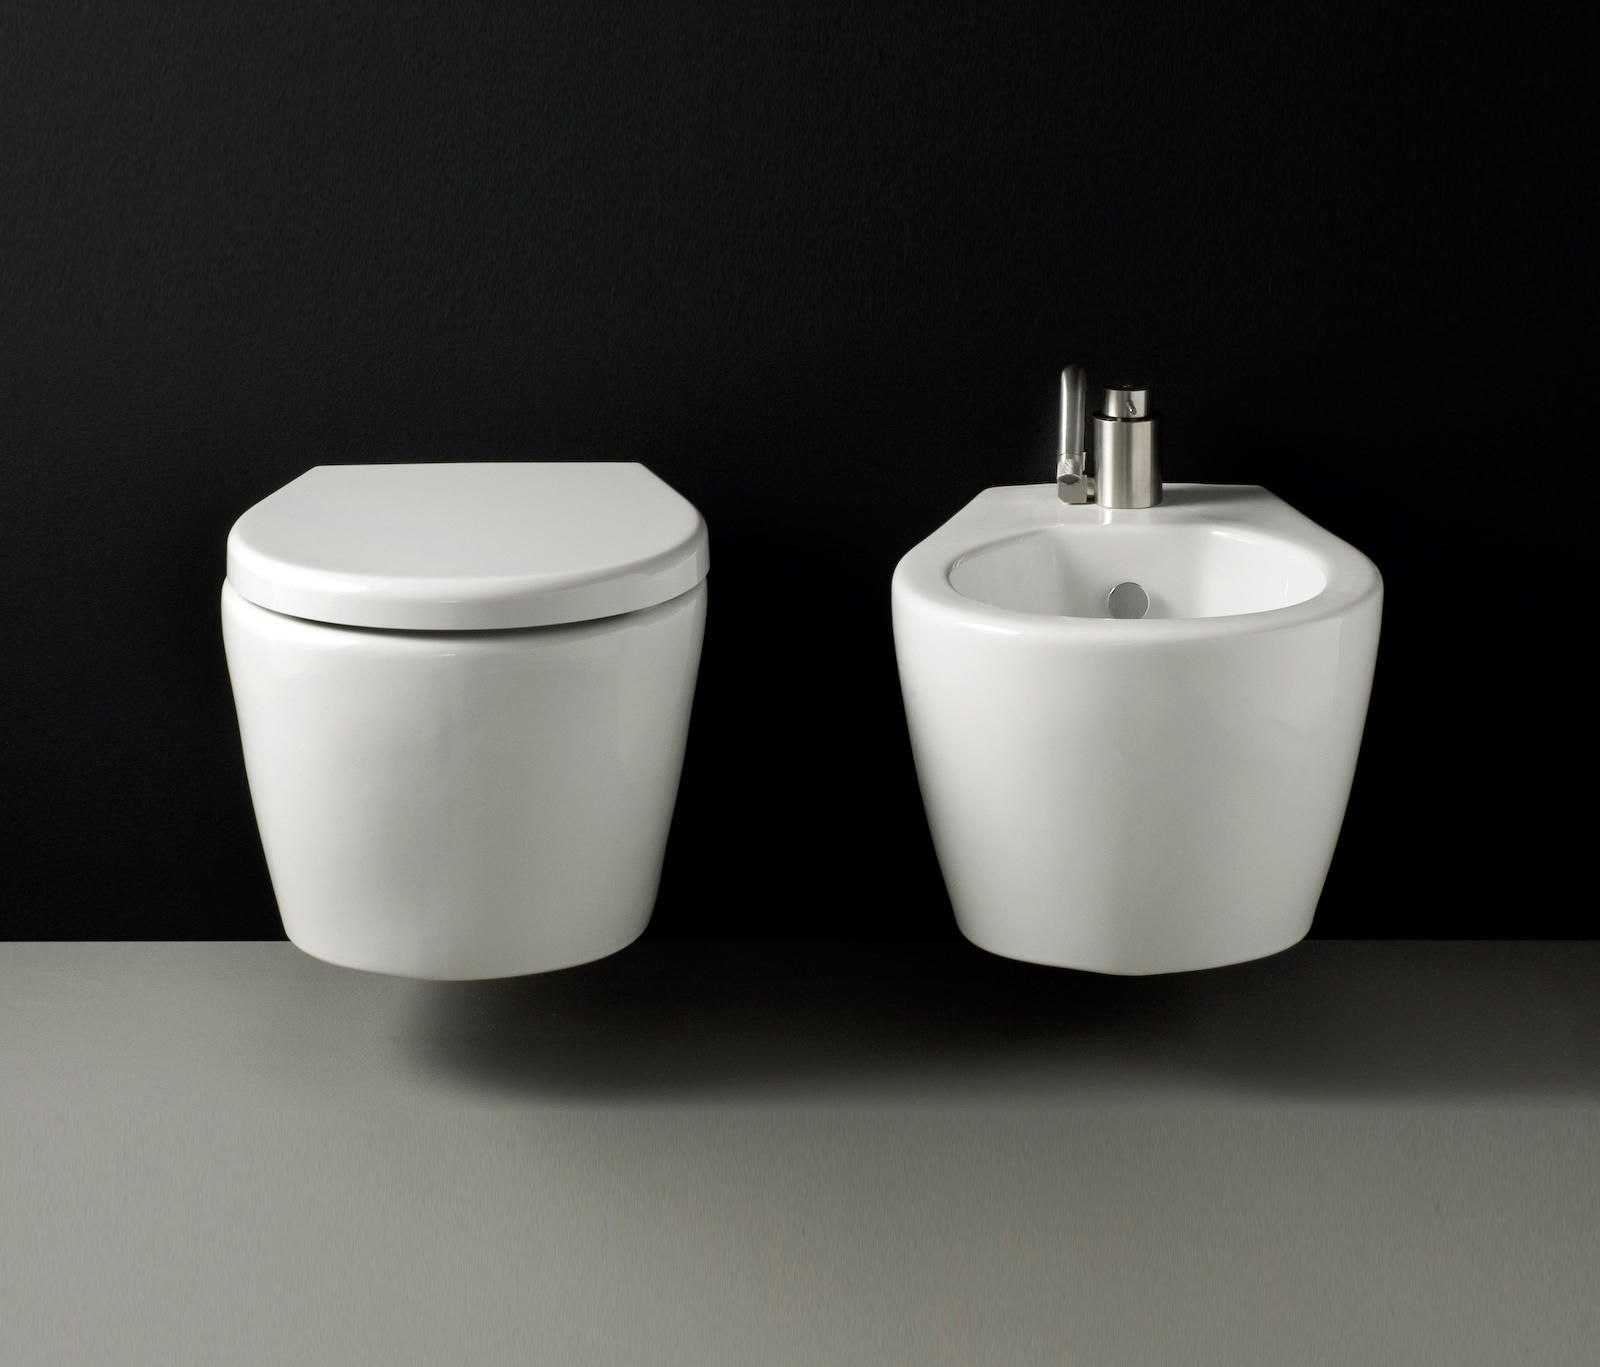 Bidet Preis Galassia Designer Toilets From Boffi All Information